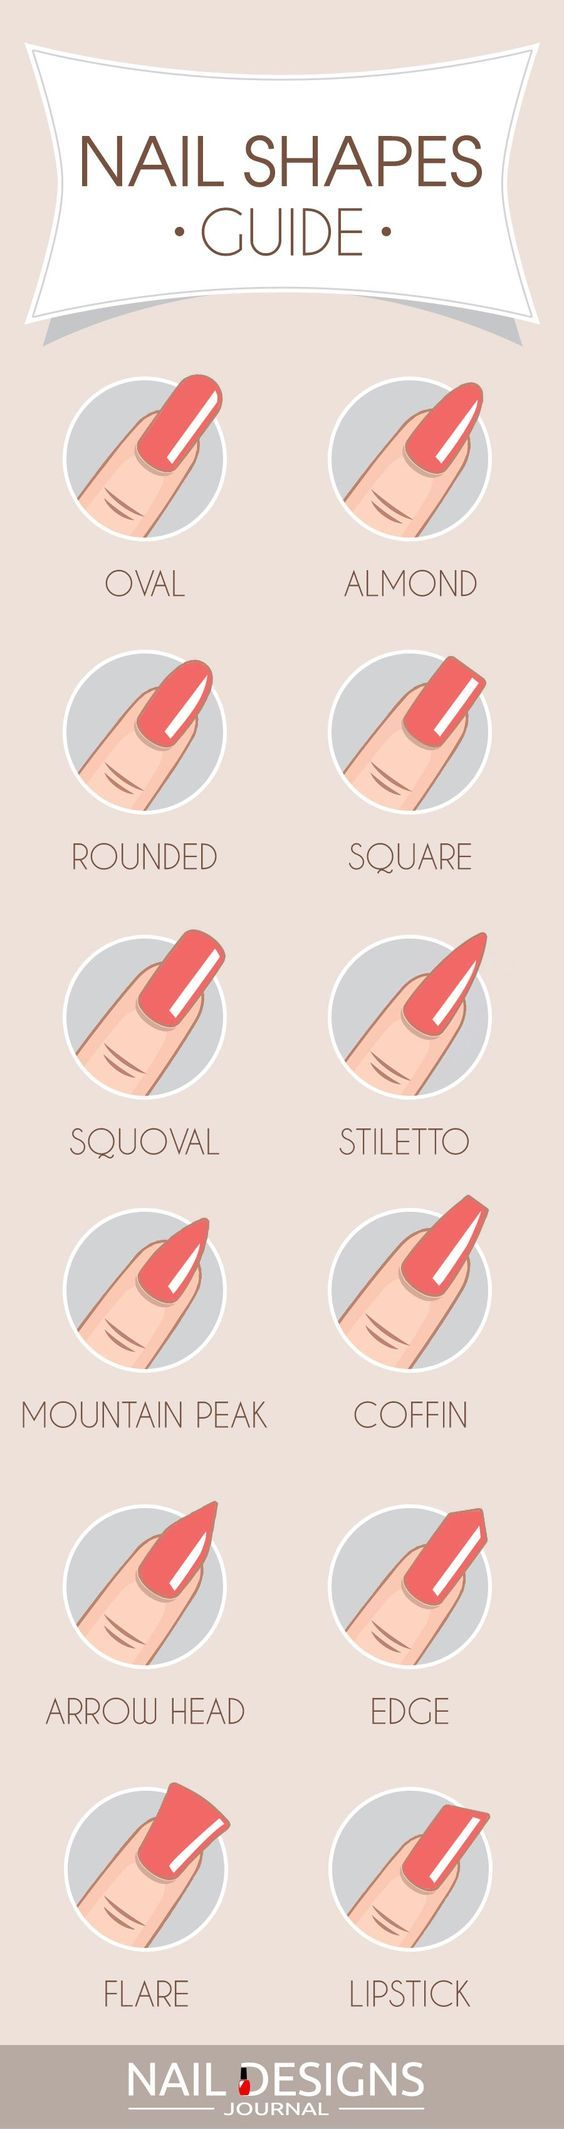 Most Popular and Trendy Nails Shapes for Glamorous Look | Shapes ...